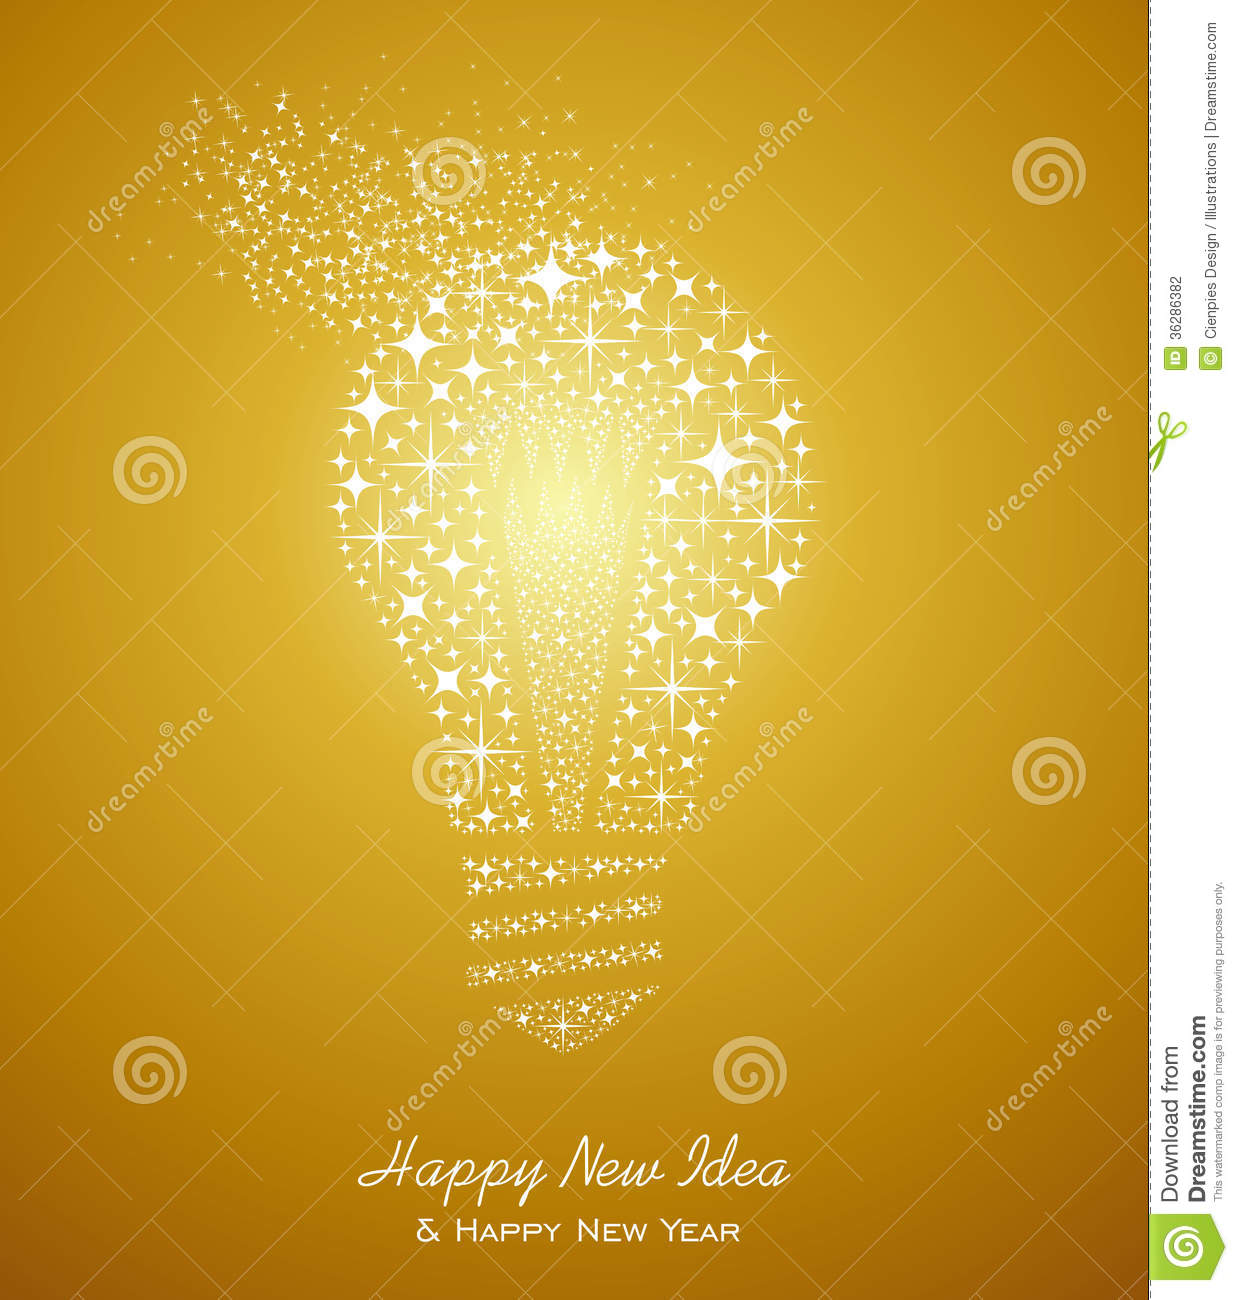 Happy new year and ideas 2014 greeting card stock vector happy new year 2014 holidays with new fresh ideas greeting card background eps10 vector file organized in layers for easy editing m4hsunfo